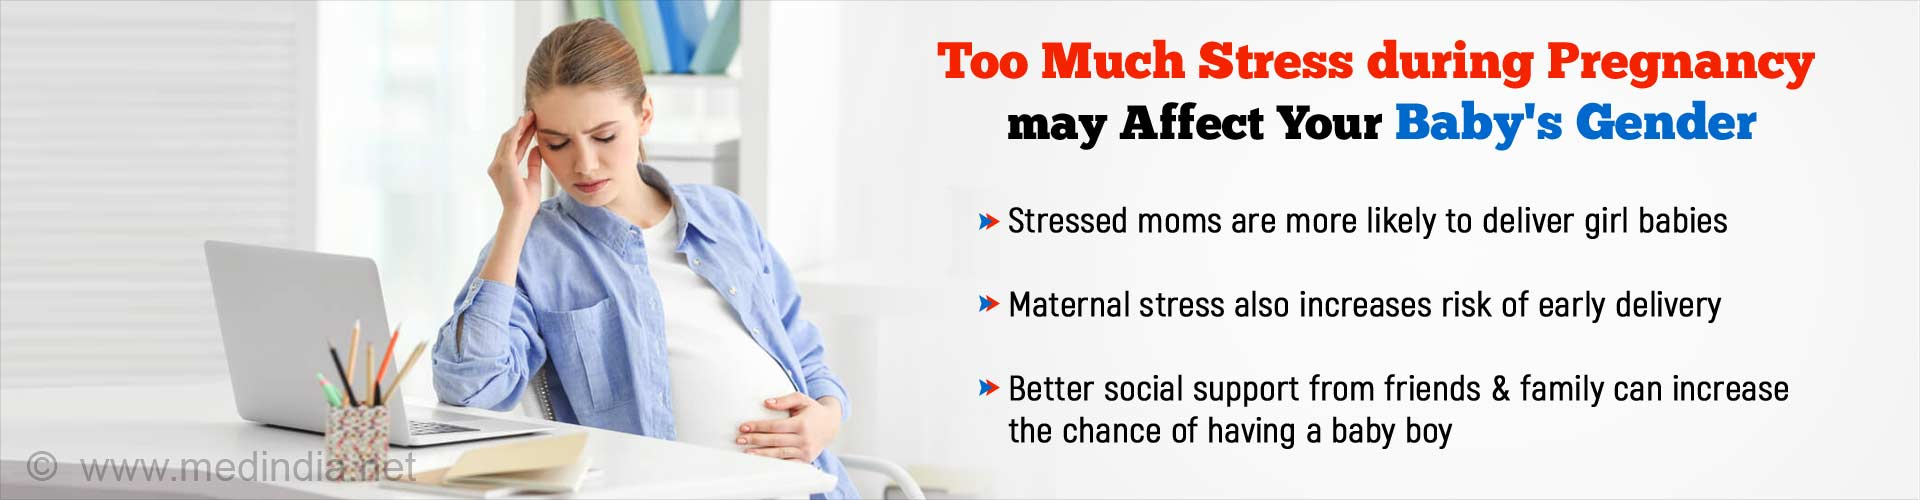 Too much stress during pregnancy may affect your baby's gender. Stressed moms are more likely to deliver girl babies. Maternal stress also increases risk of early delivery. Better social support from friends and family can increase the chance of having a baby boy.